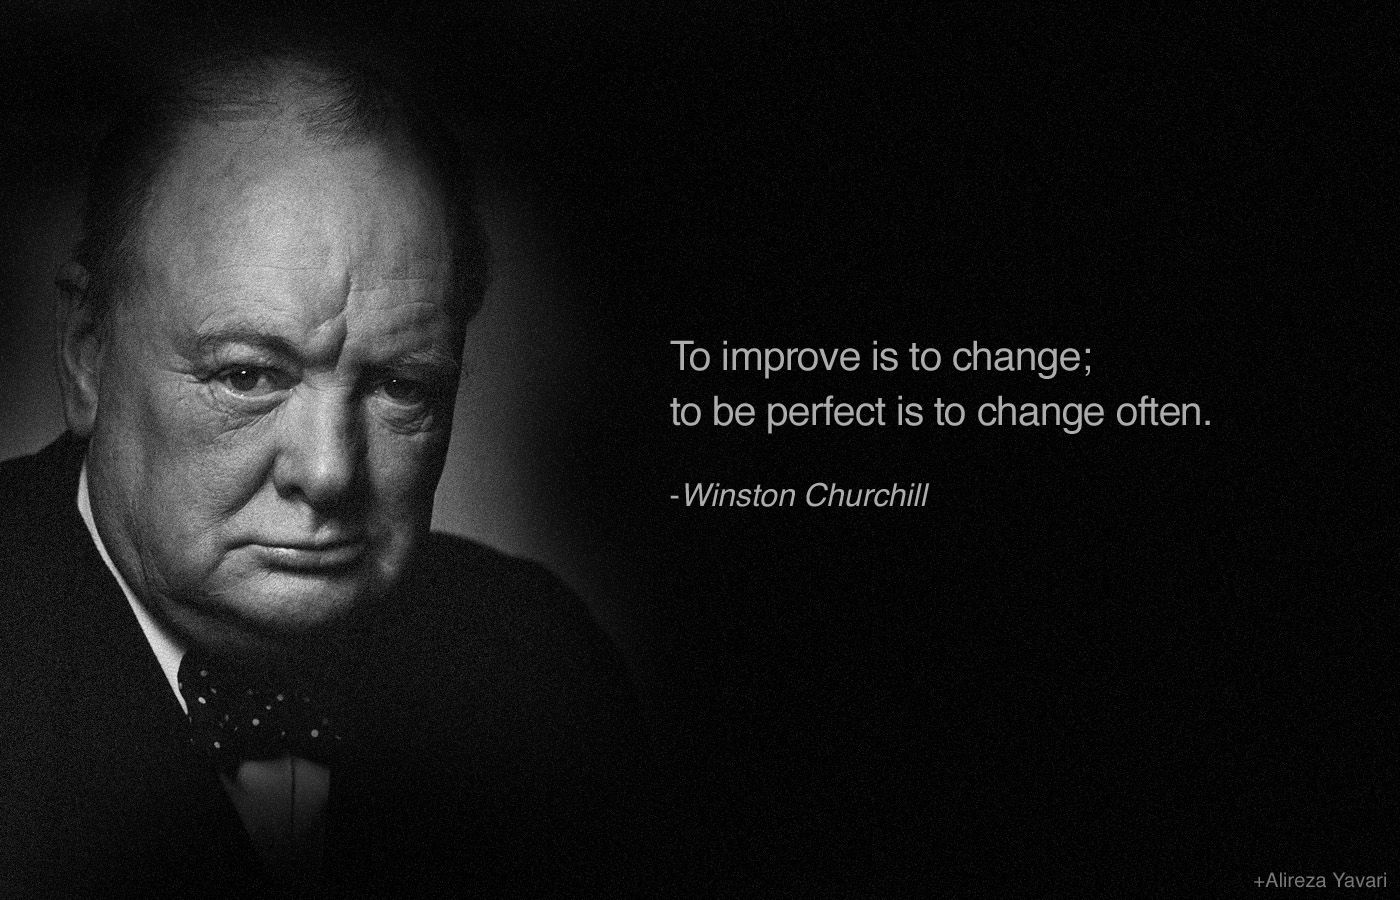 to improve is to change